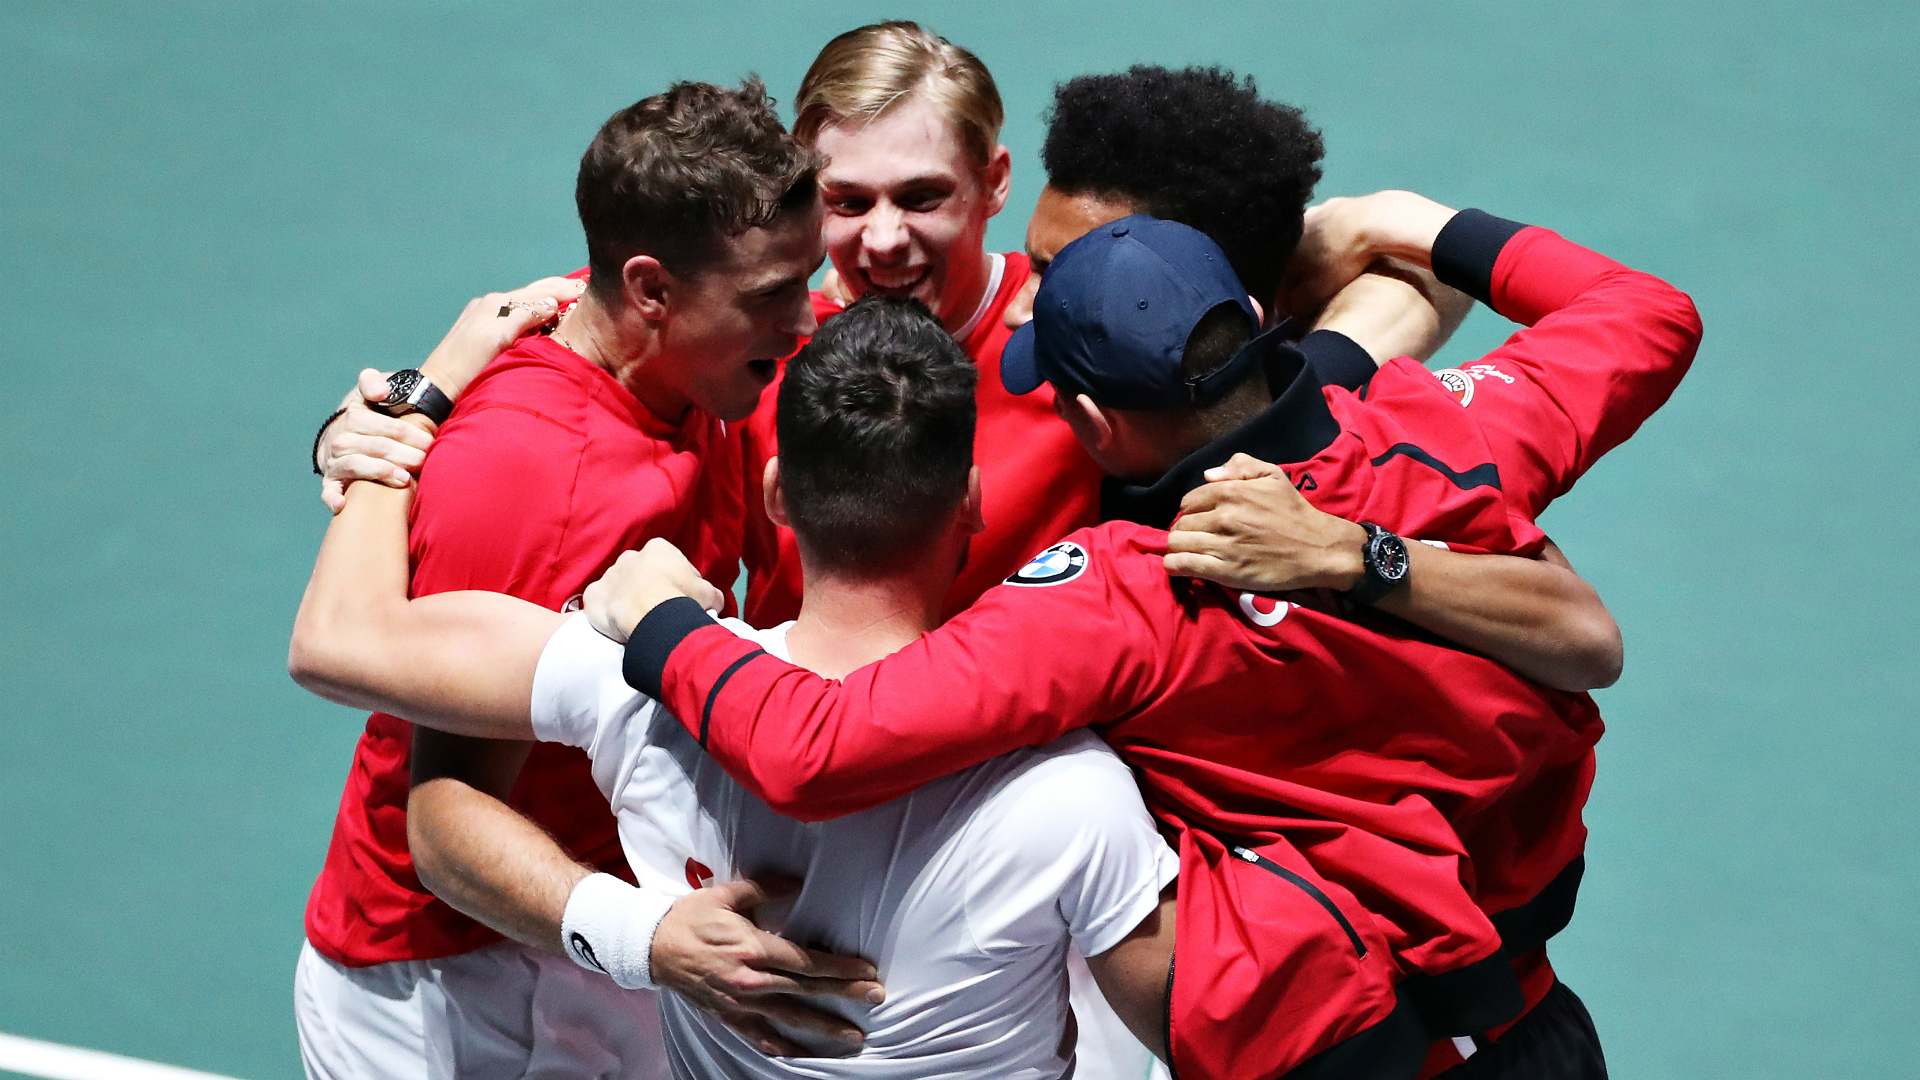 A pulsating tie went the way of Canada, who defeated Russia to ensure they will contest the Davis Cup final for the first time.